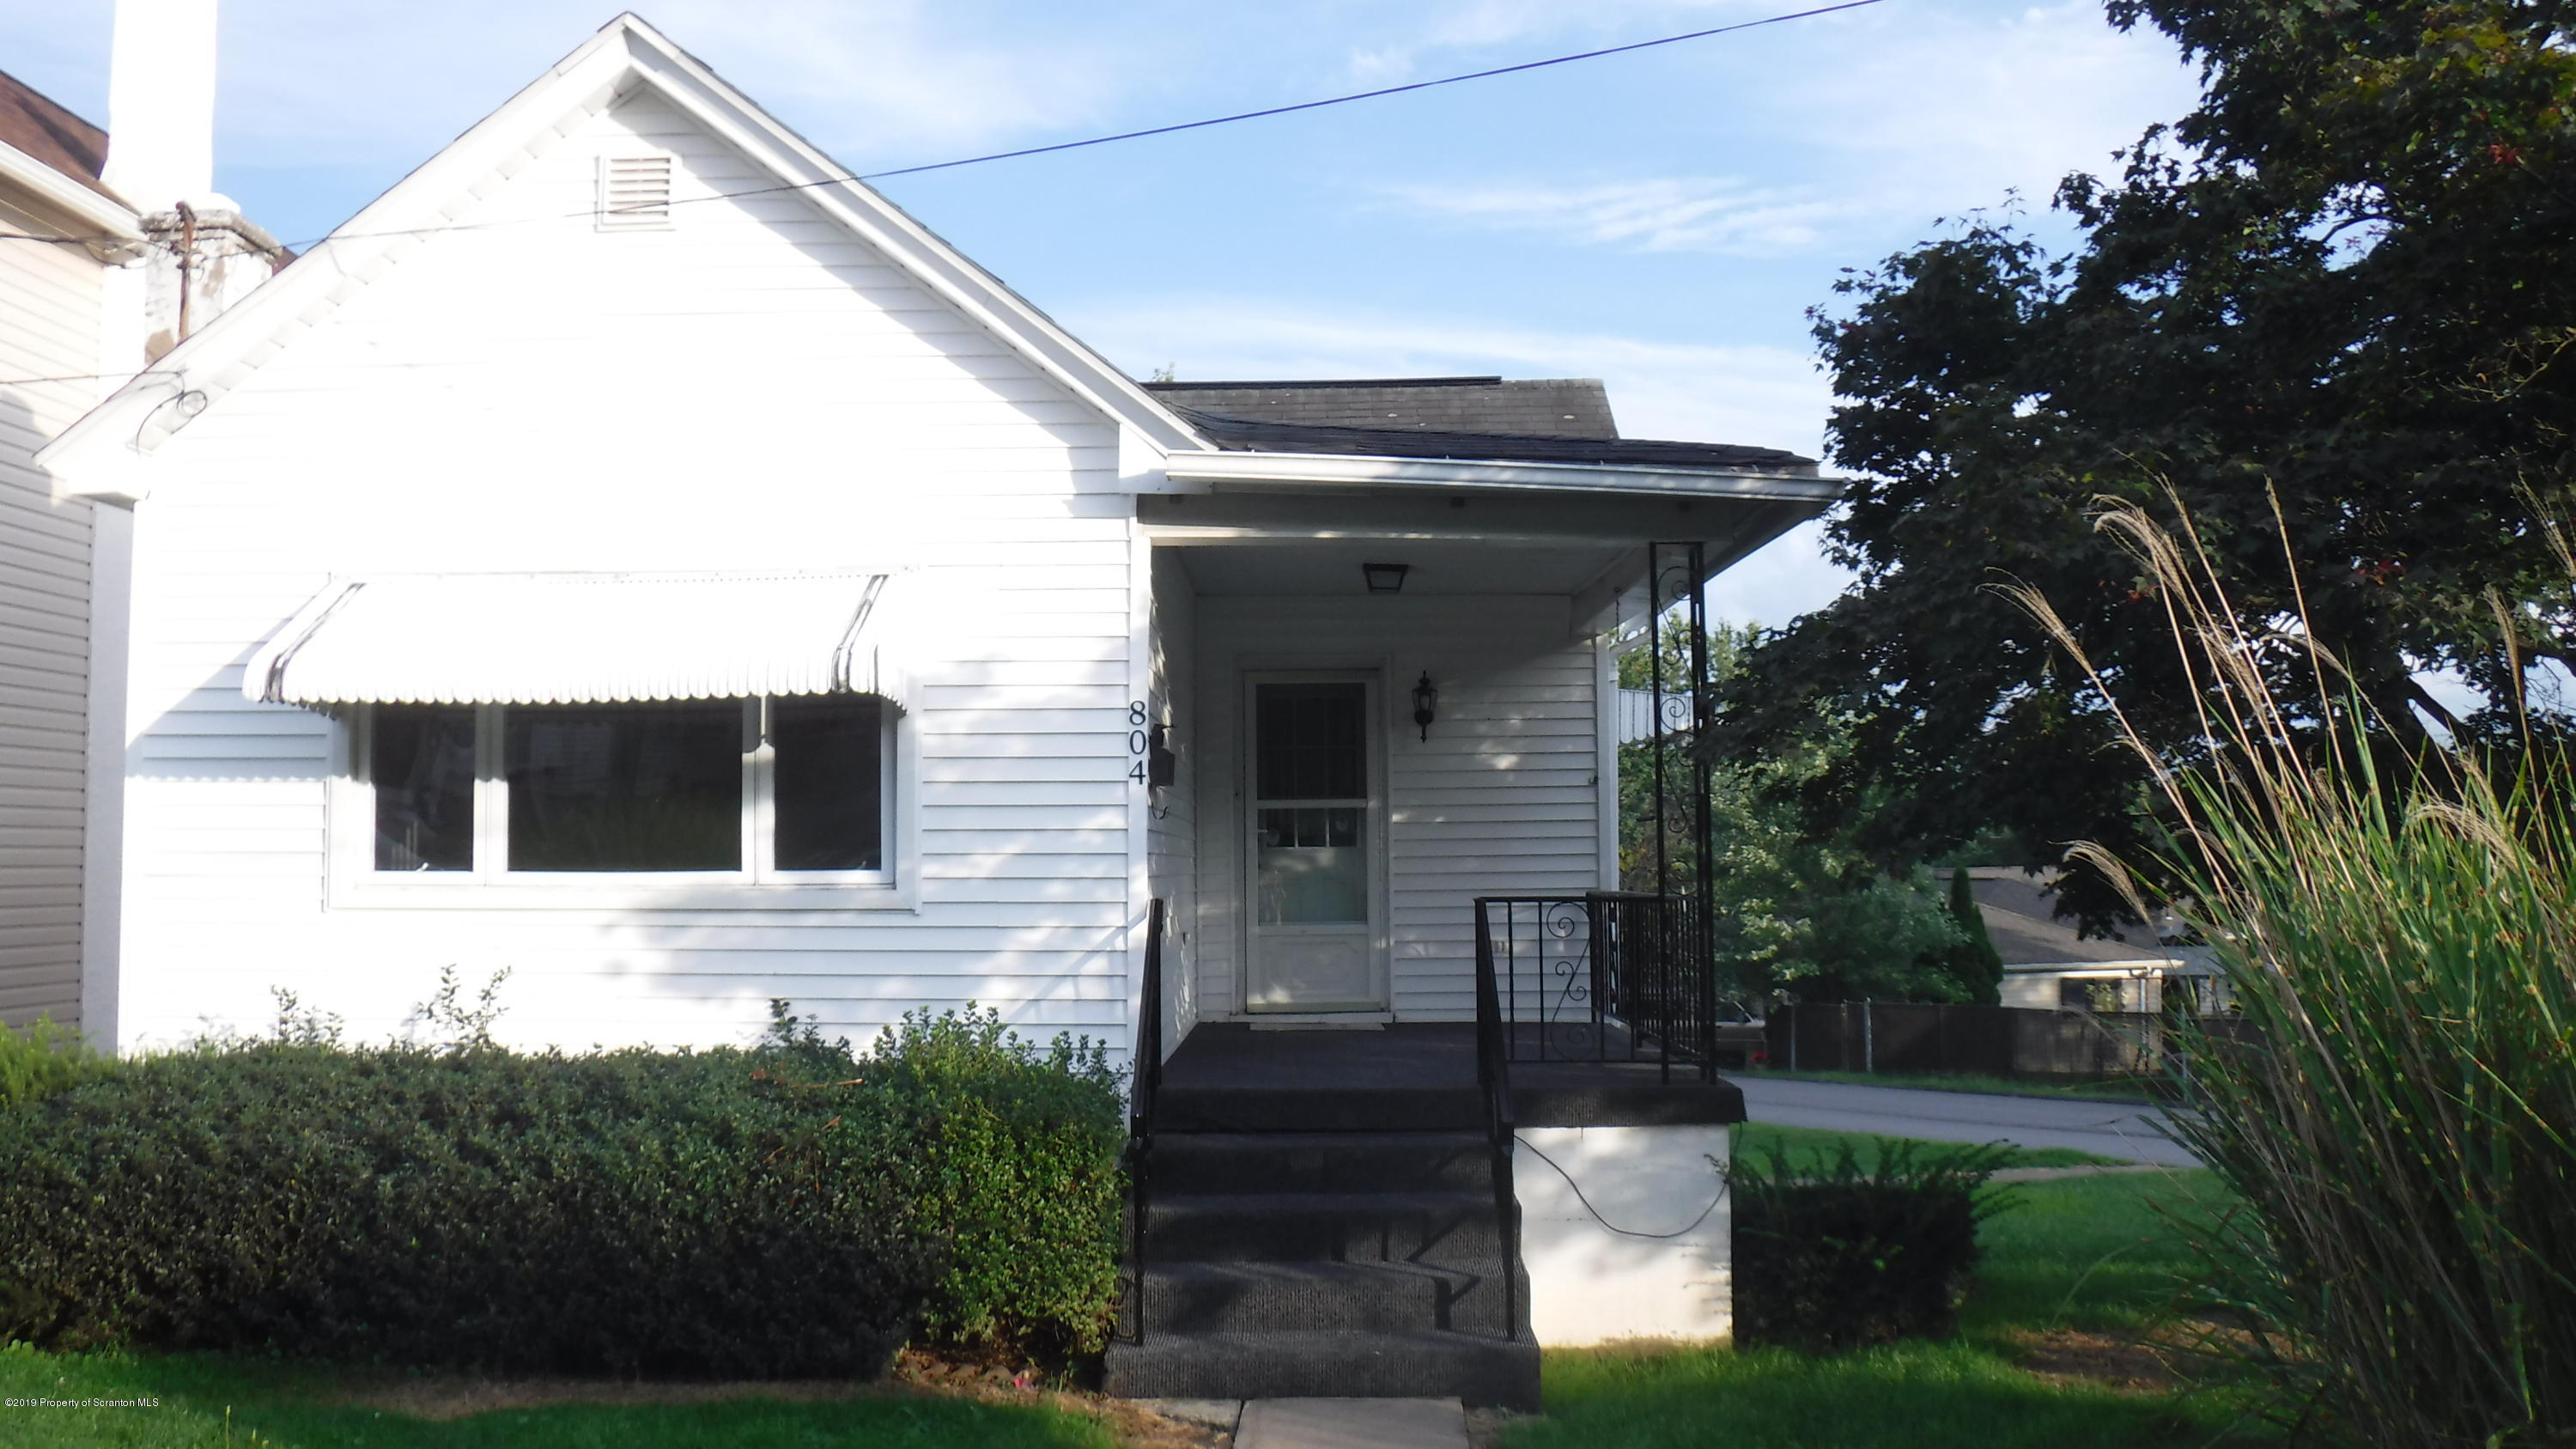 804 First St, Peckville, Pennsylvania 18452, 2 Bedrooms Bedrooms, 7 Rooms Rooms,2 BathroomsBathrooms,Single Family,For Sale,First,19-4097